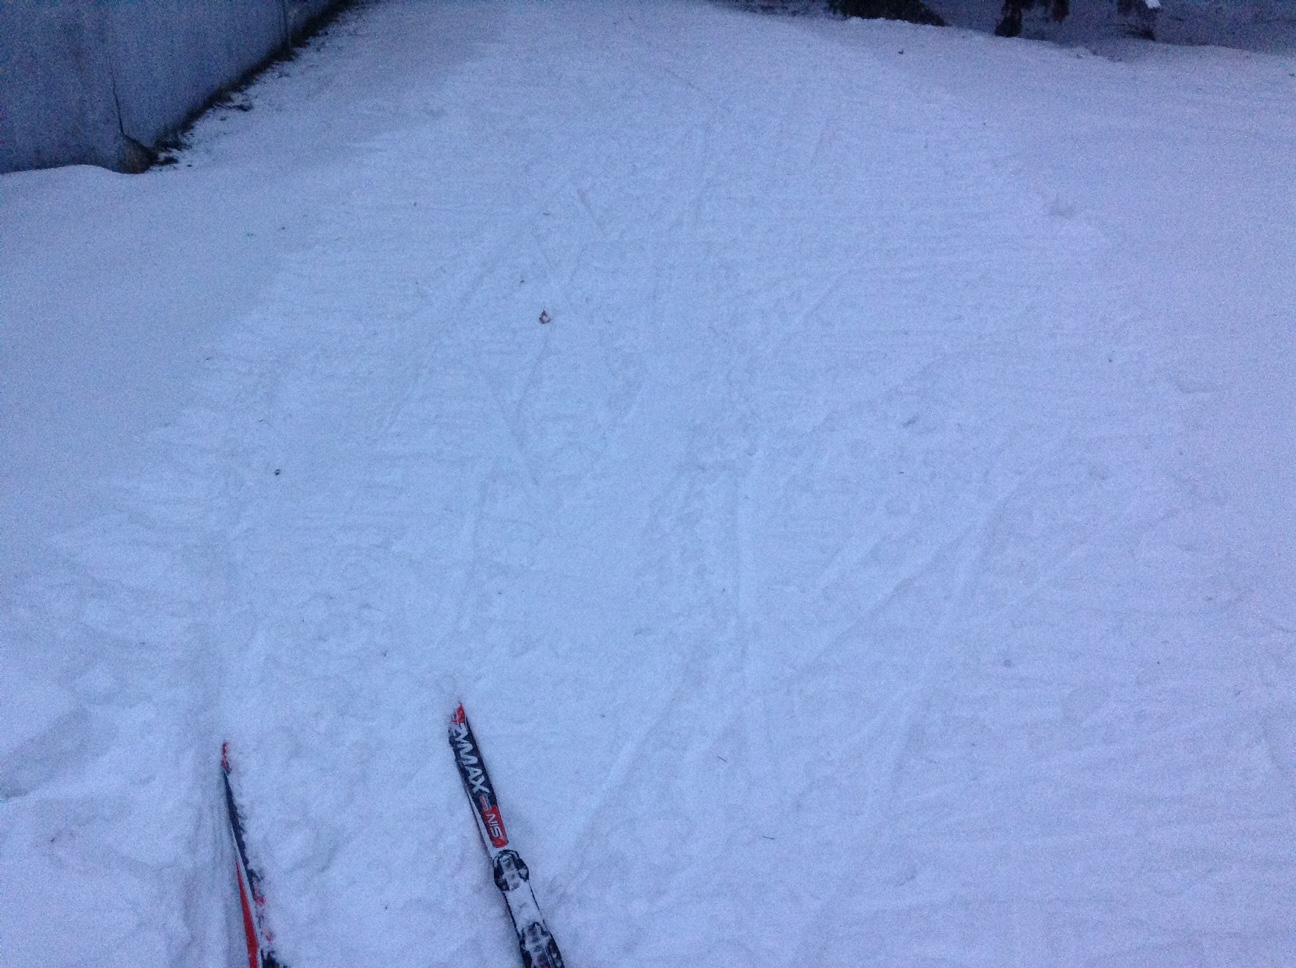 Ski track before the storm